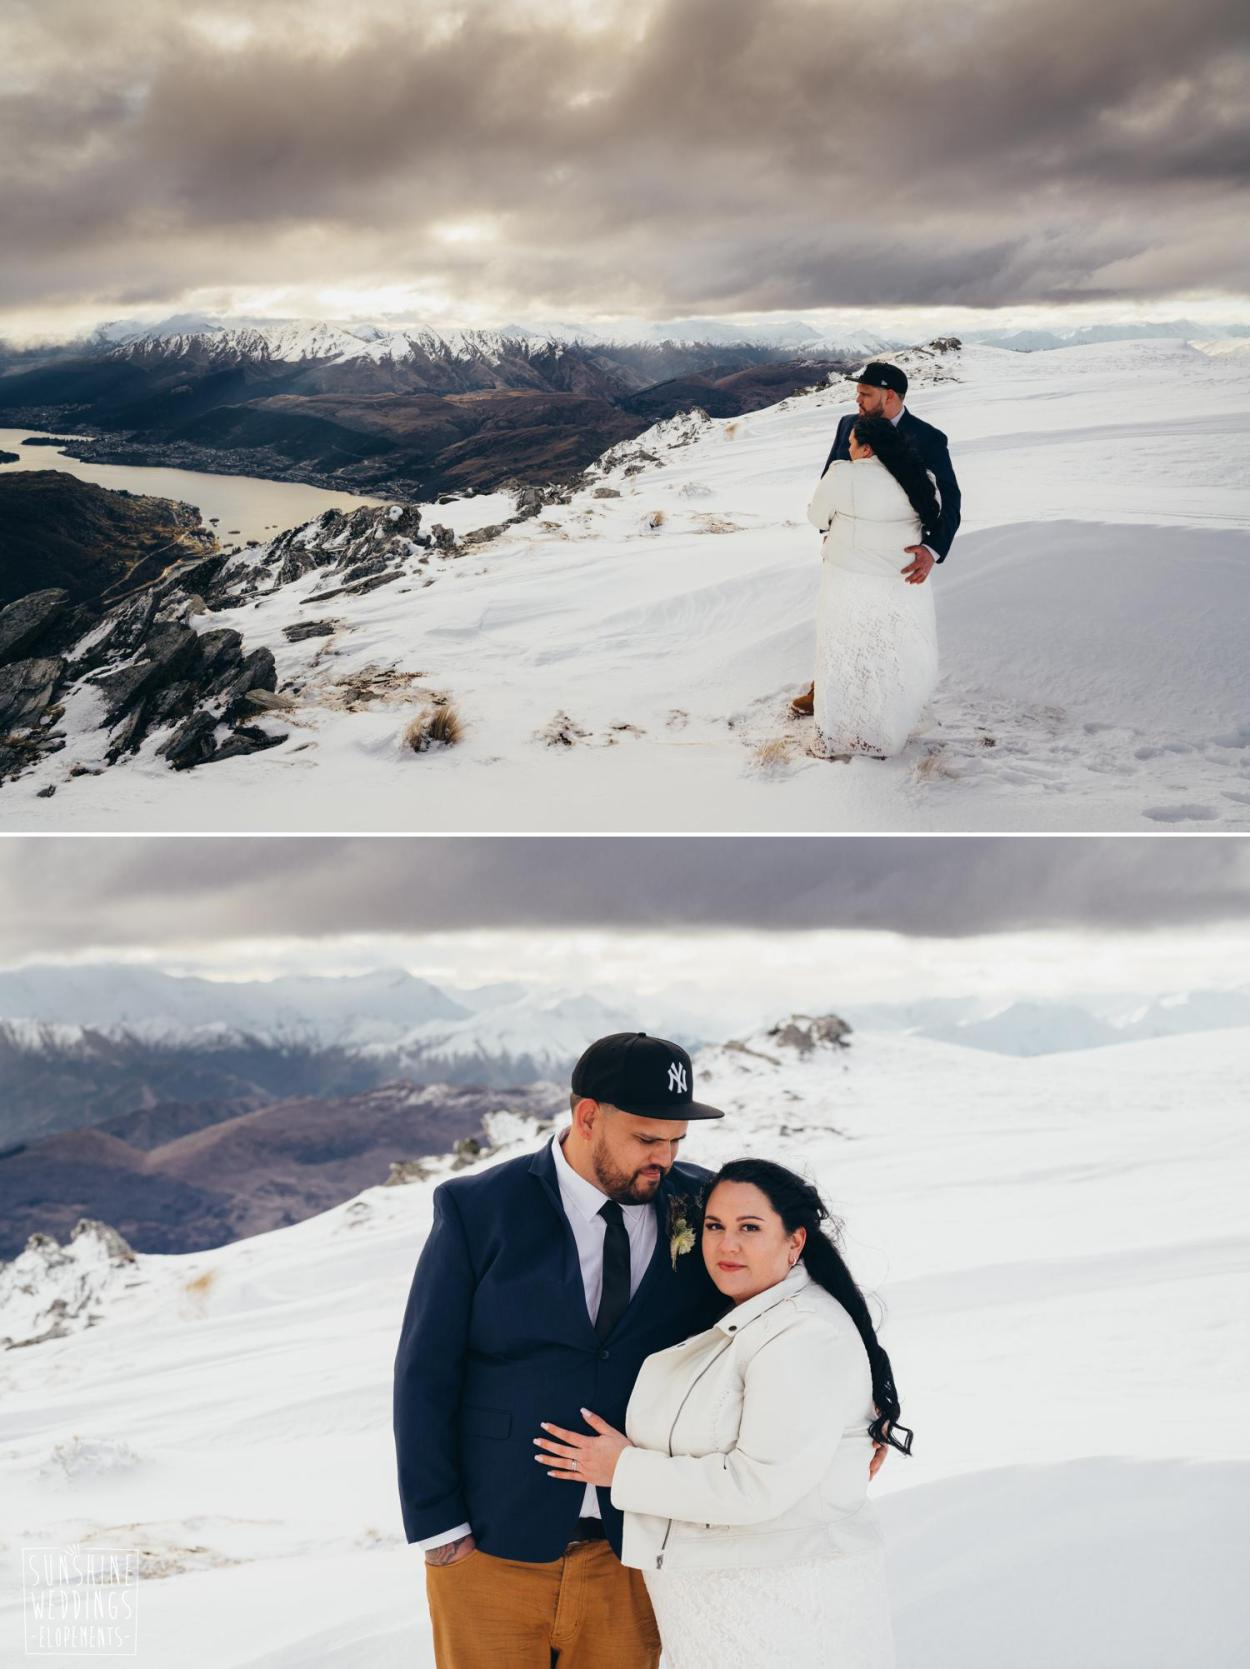 NZ winter wedding